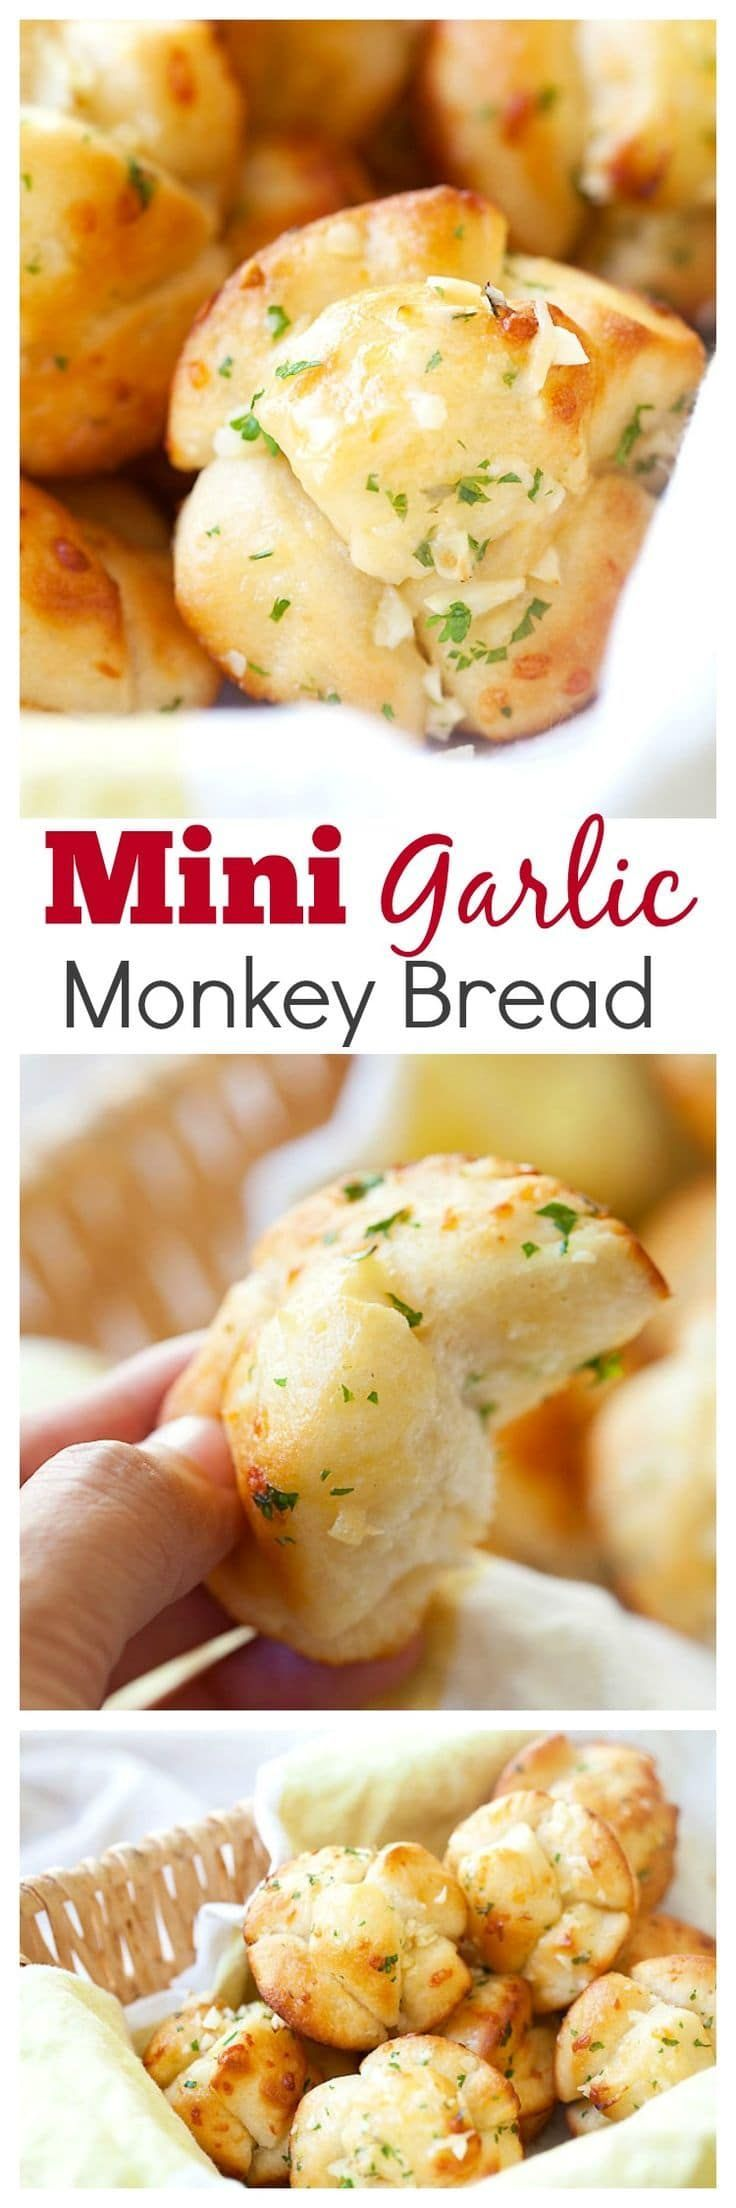 Mini garlic monkey bread – best and easiest monkey bread takes 20 mins! Use Pillsbury biscuits dough and garlic herb butter   rasamalaysia.com